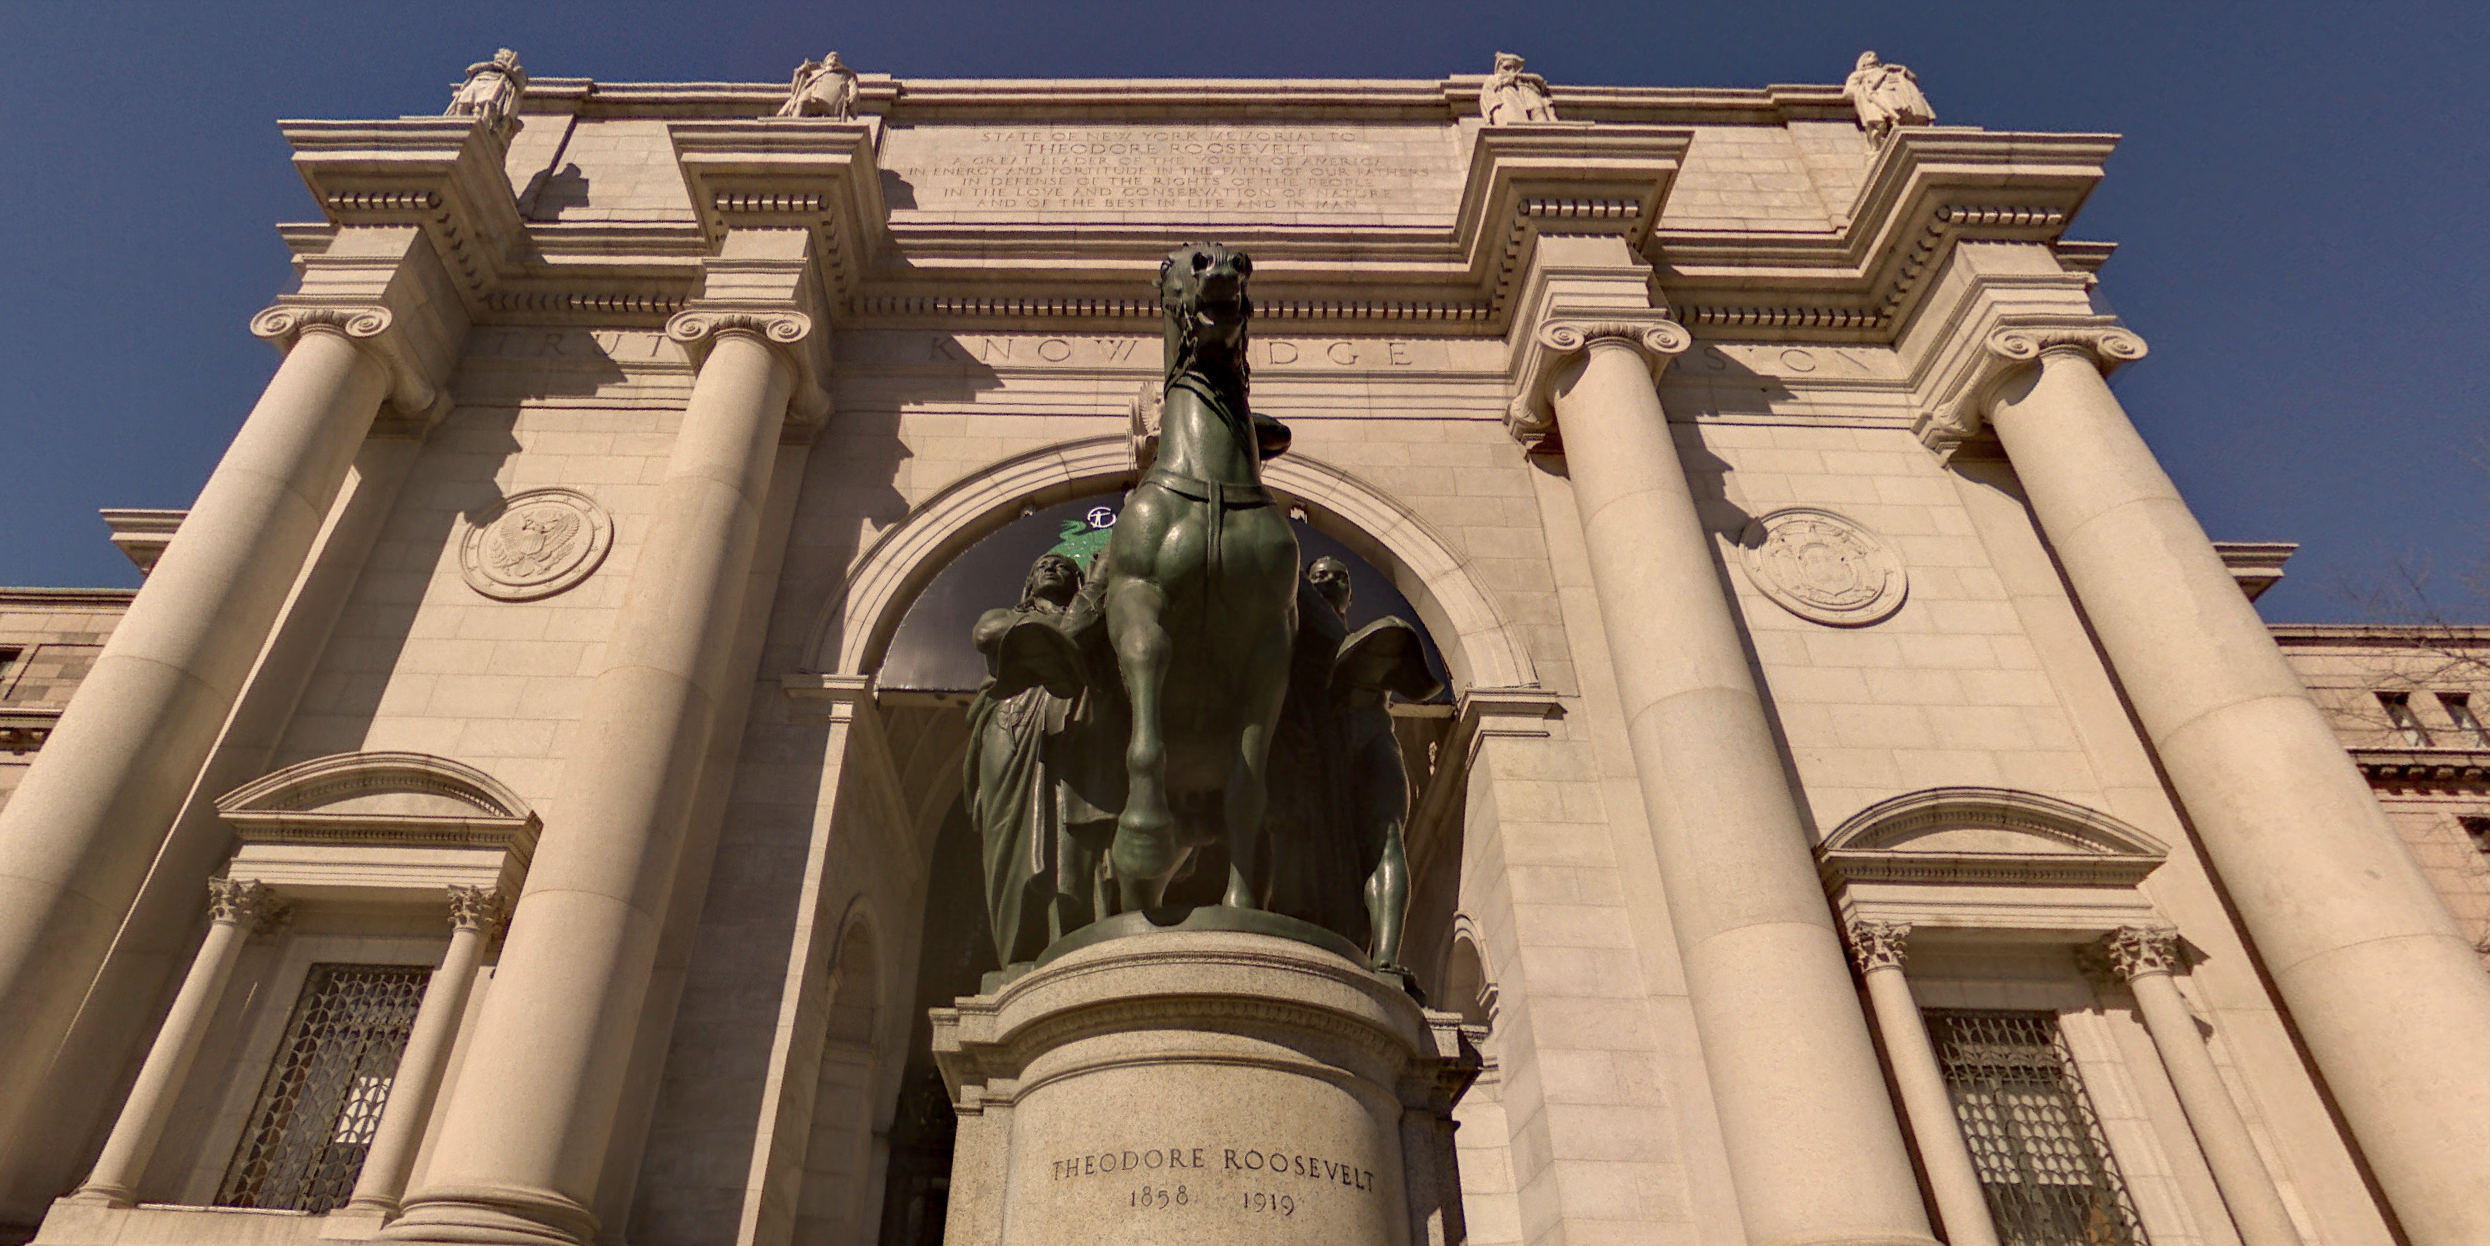 A Theodore Roosevelt statue outside the American Museum of Natural History in New York is seen in a Google Maps Street View image.